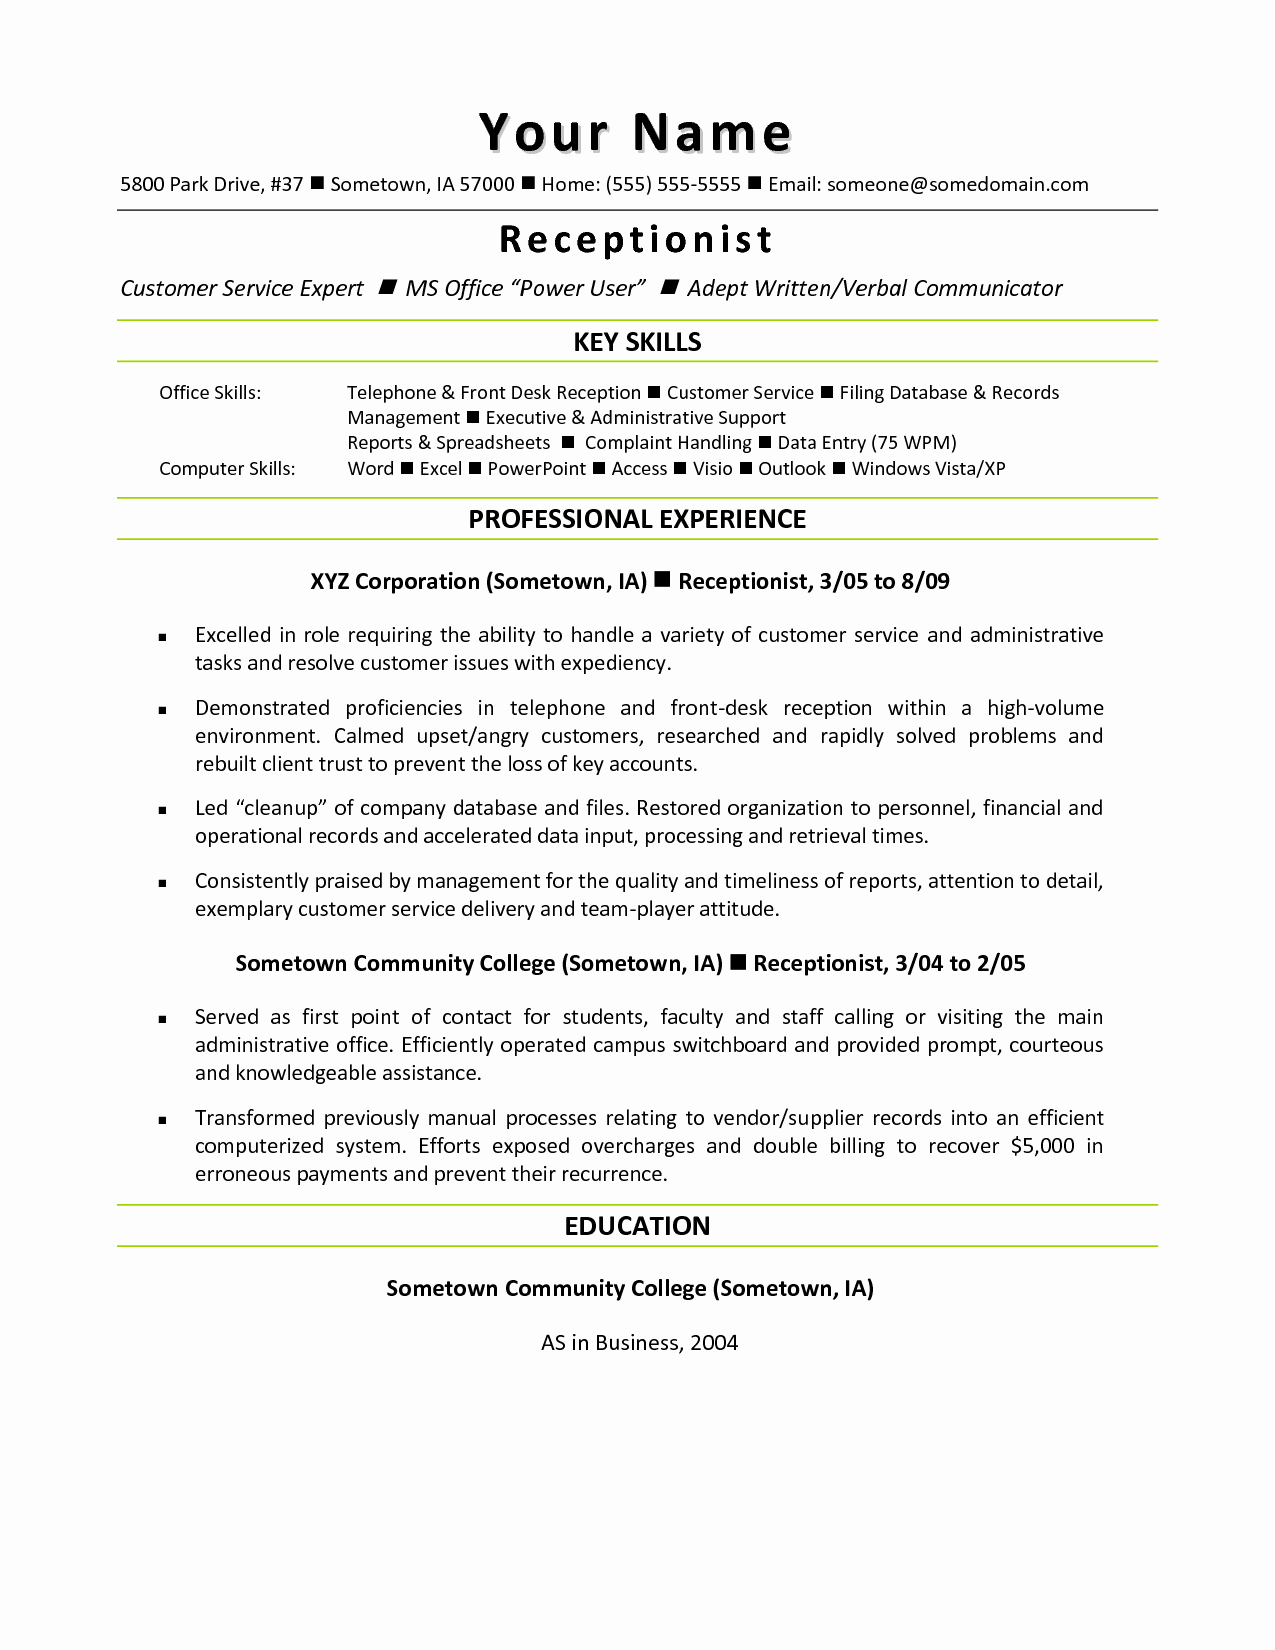 resume cover letter template for medical assistant Collection-Medical assistant Sample Resume Fresh Sample Cover Letter for Receptionist Od Consultant Cover Letter 7-i